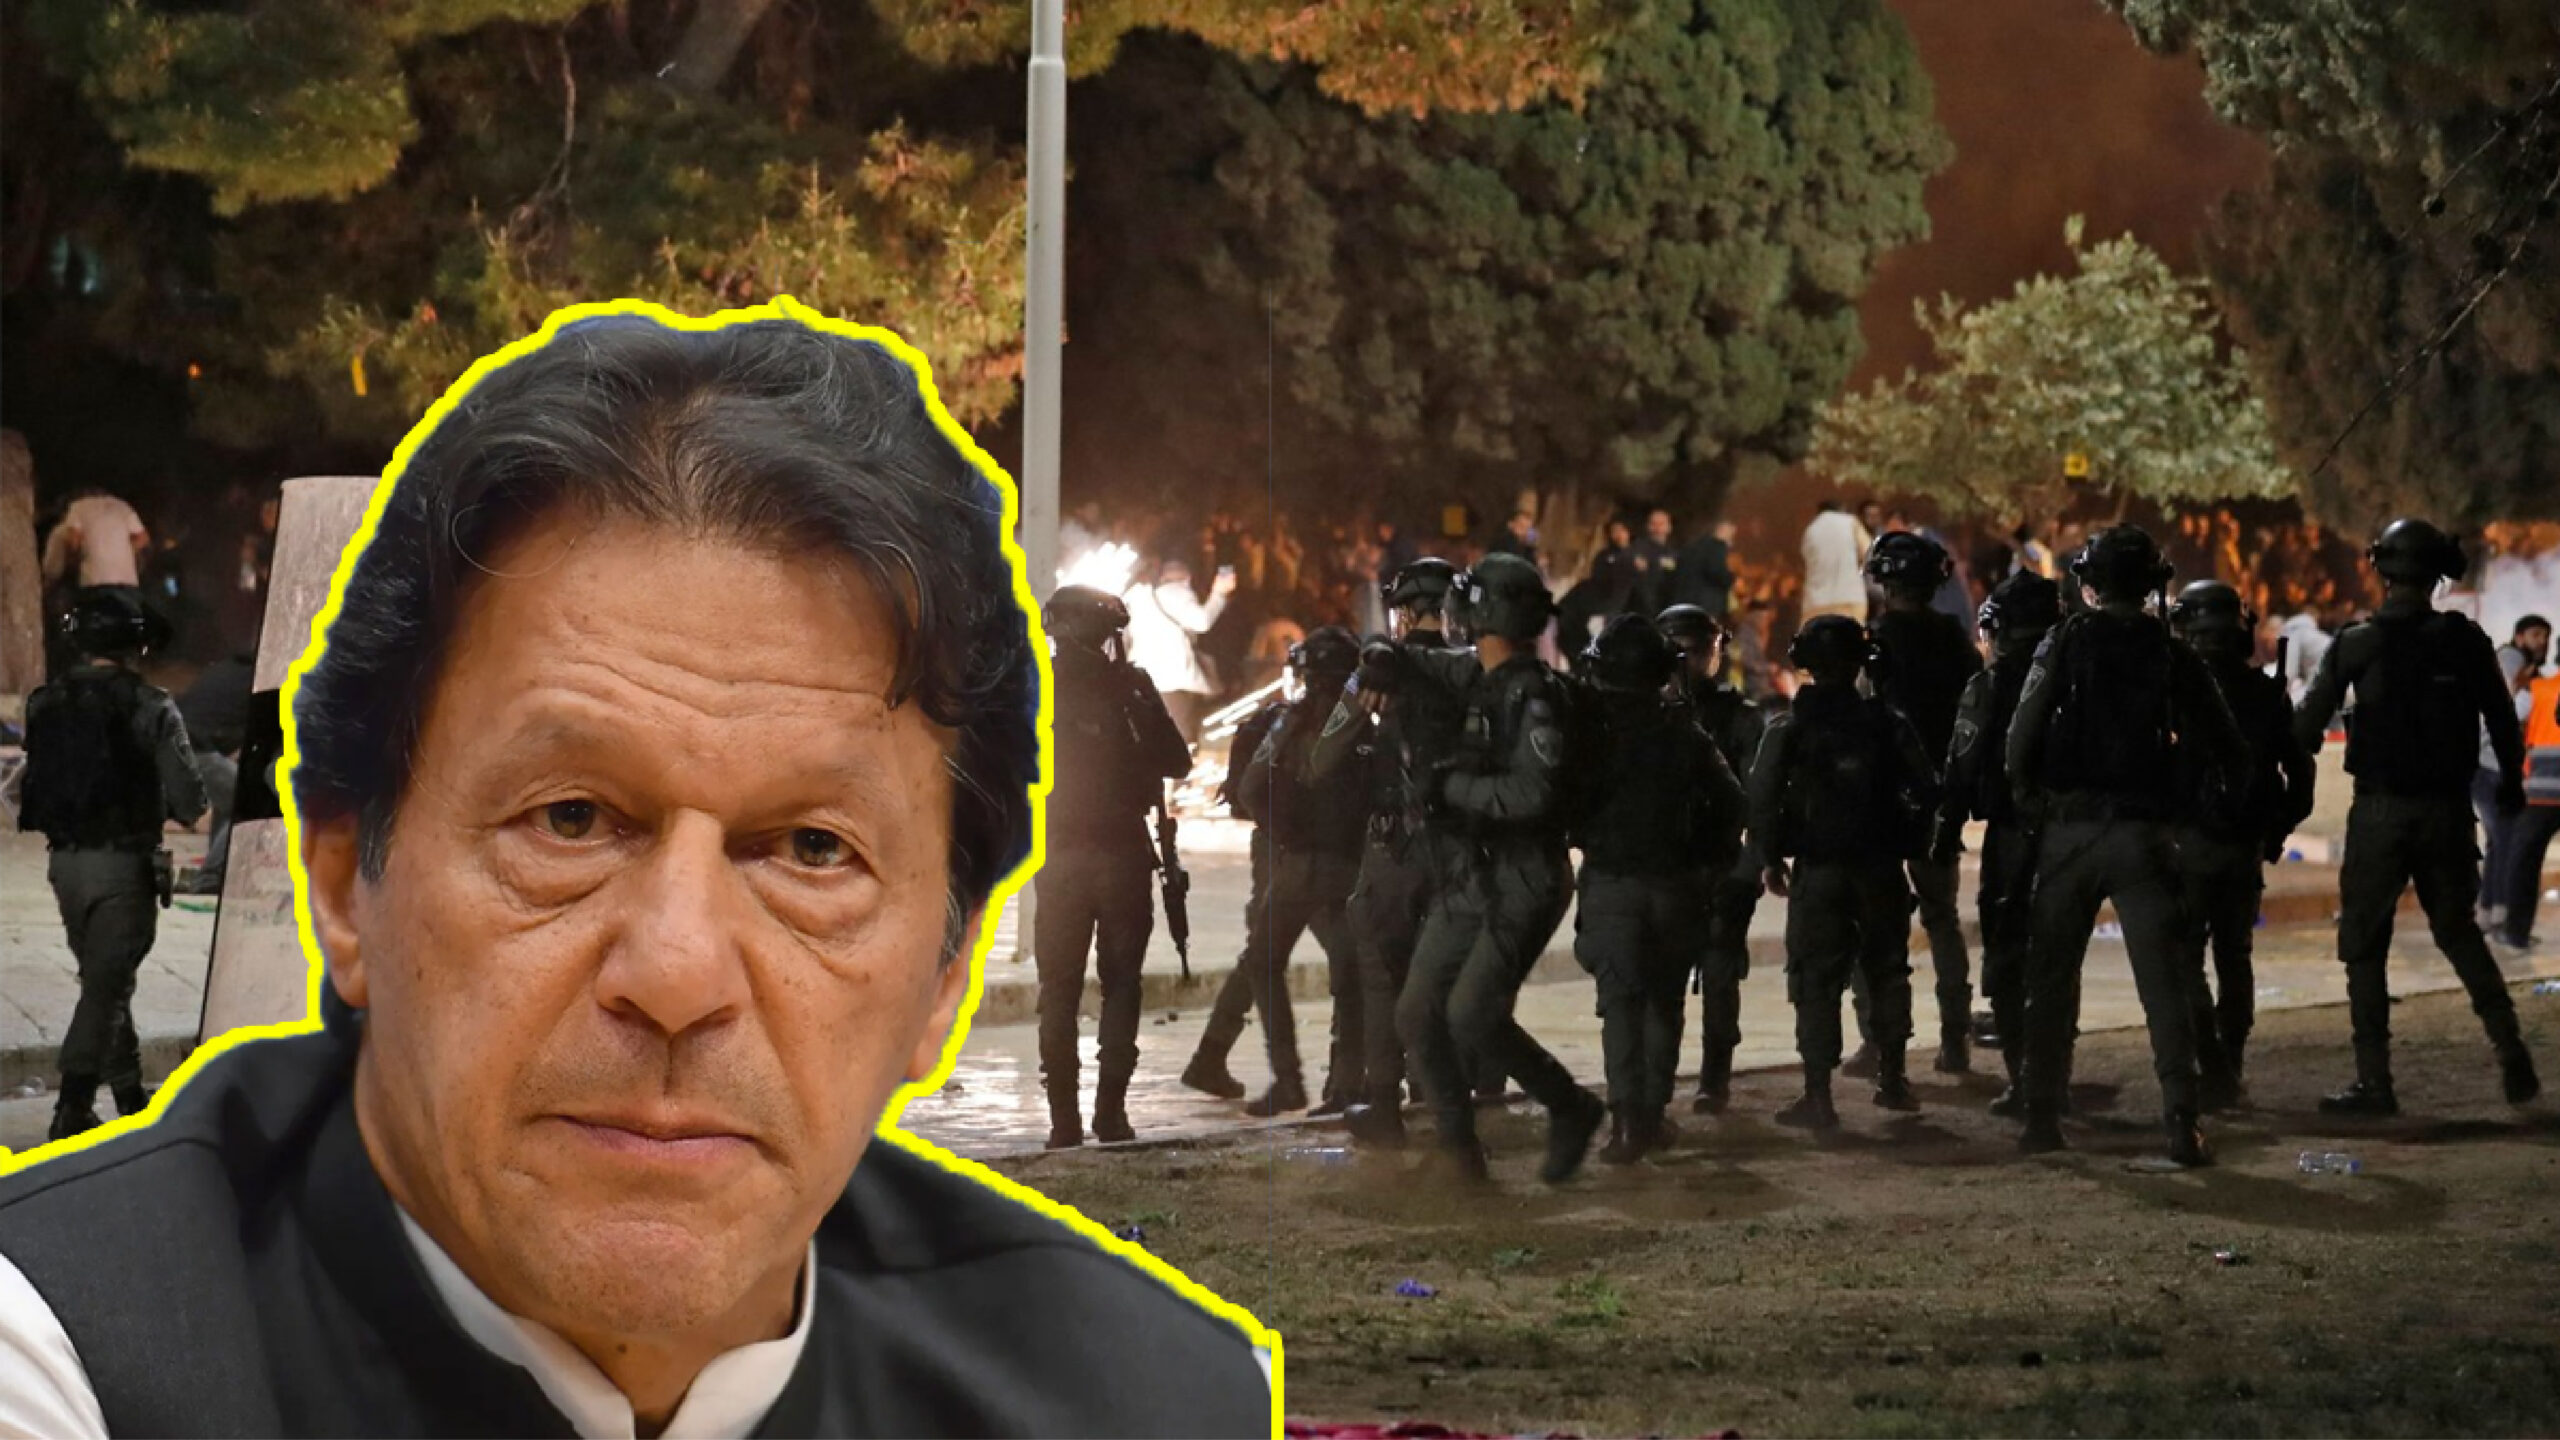 PM Khan condemns grave scenario in Jerusalem, urges world to take action